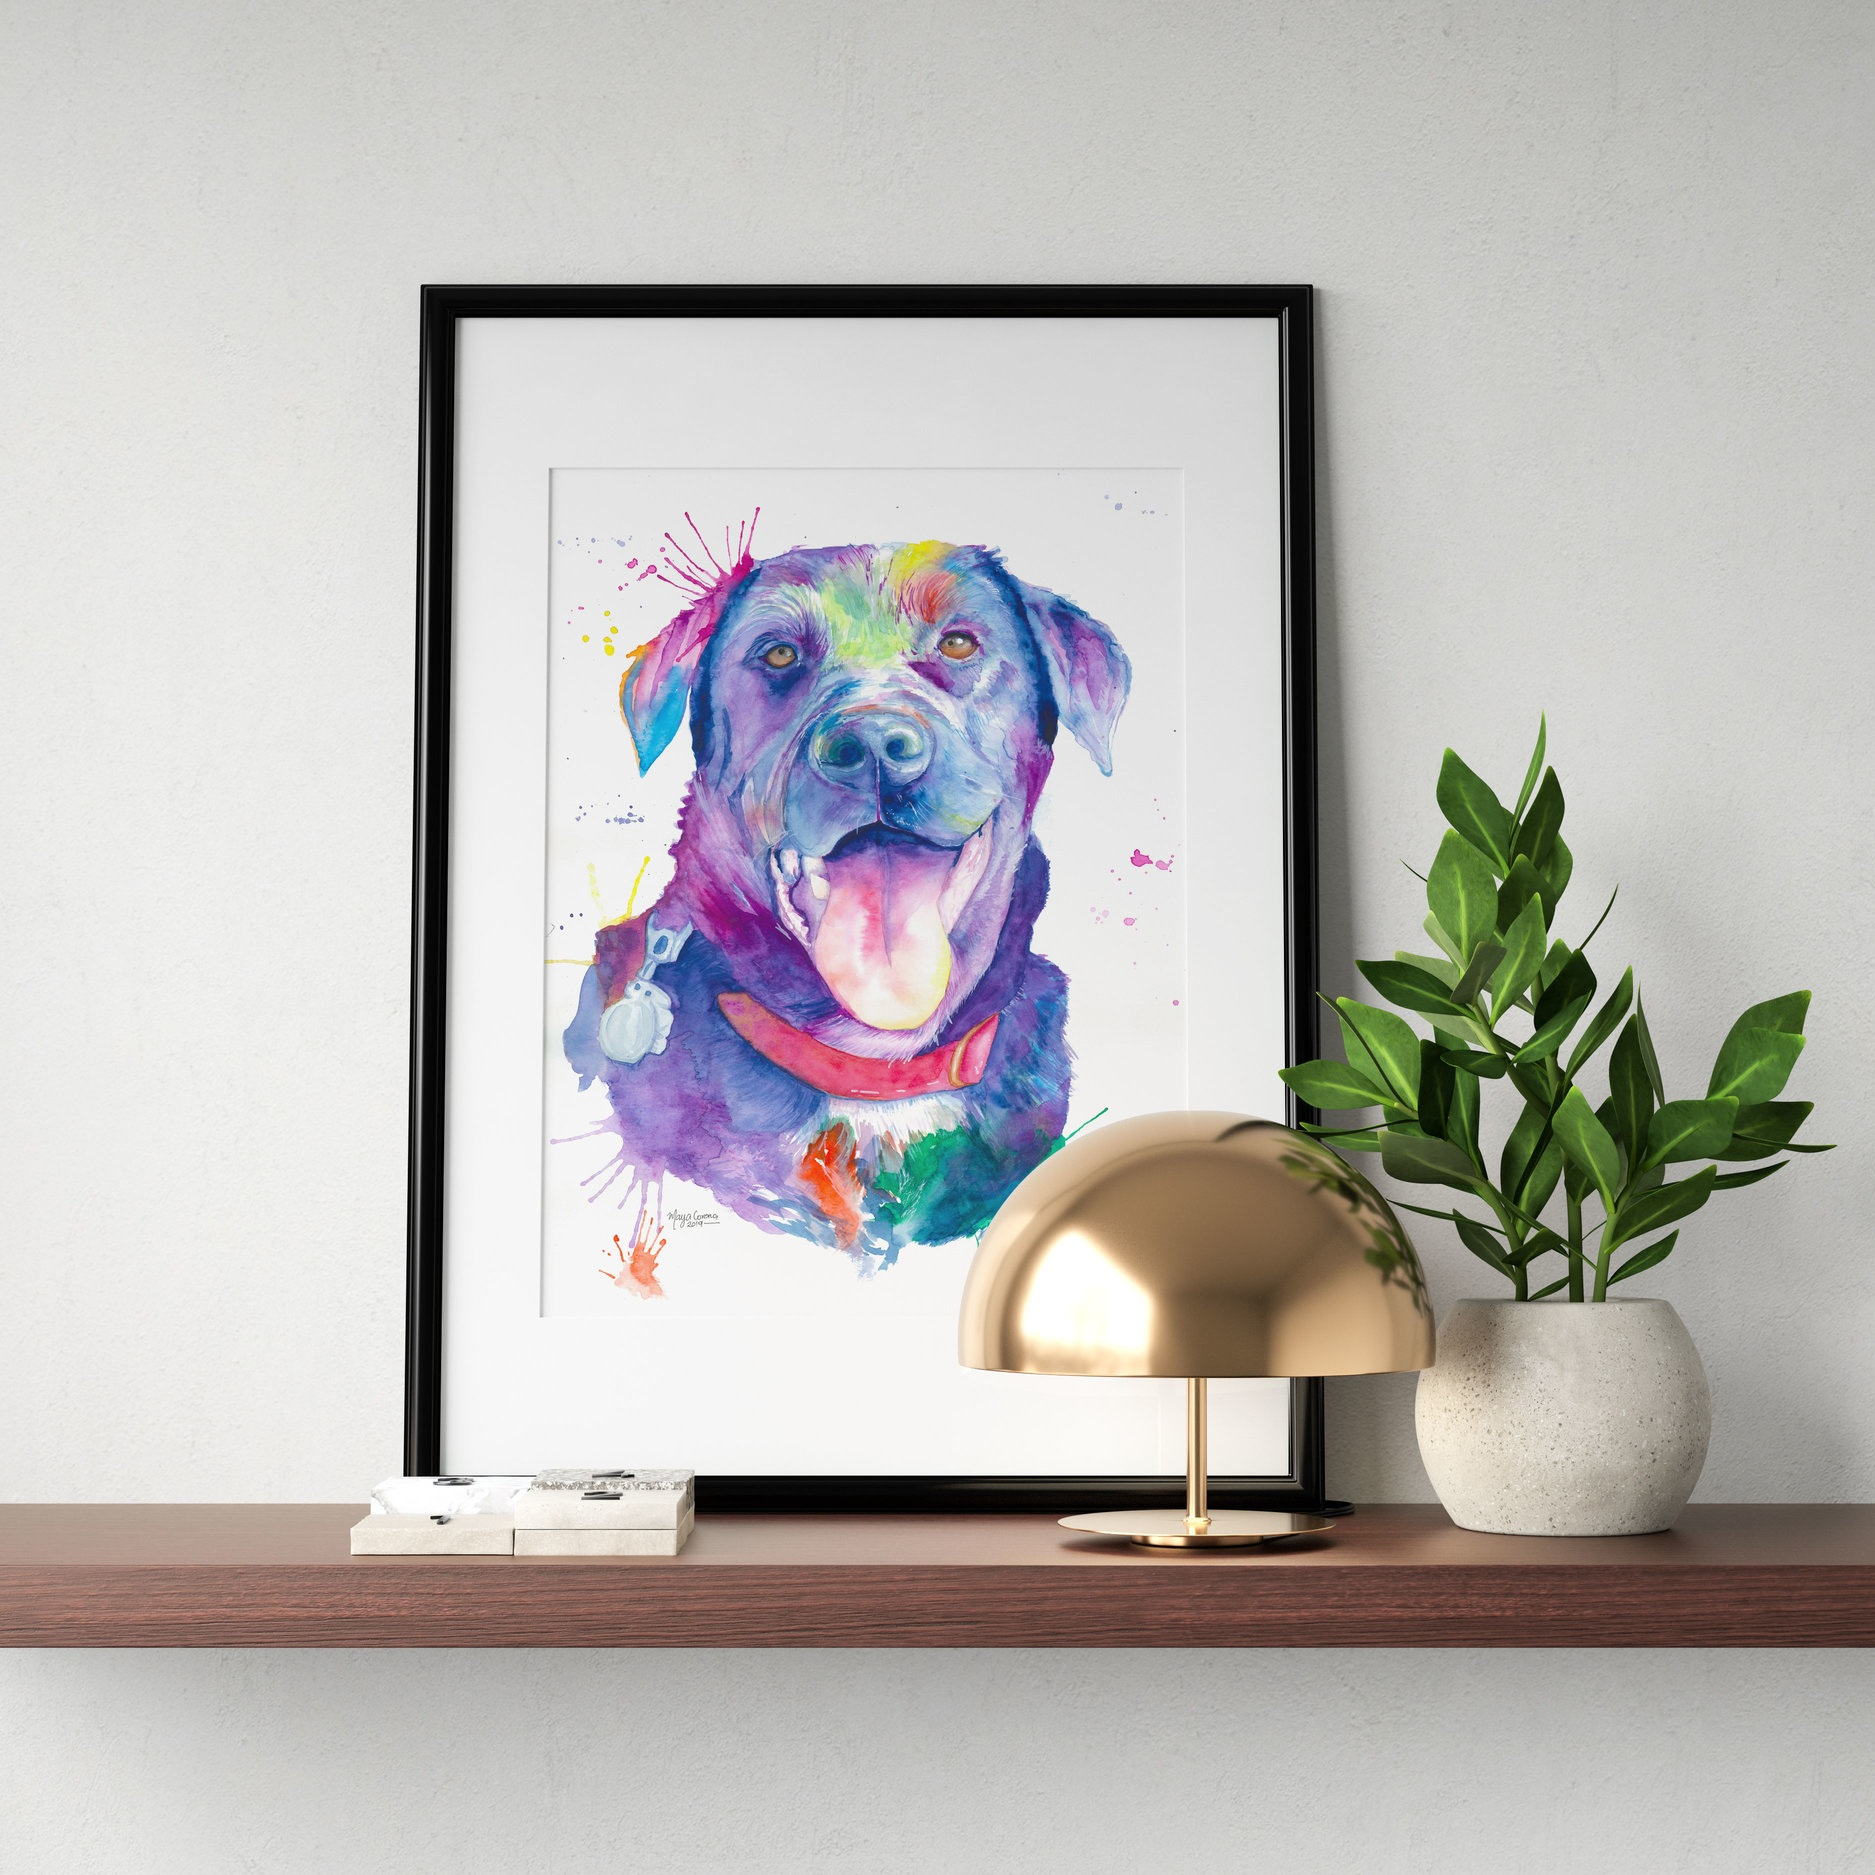 Bentley - ✰✰✰✰✰The painting I had commissioned is so very special to me. What Maya created has absolutely blown me away. I couldn't imagine anything more perfect.If you are looking for someone to capture your fur baby in an absolutely stunning way, you won't find better than Maya. This girl is insanely talented. ❤️❤️❤️— Jessica Hanna, Calgary AB - Canada